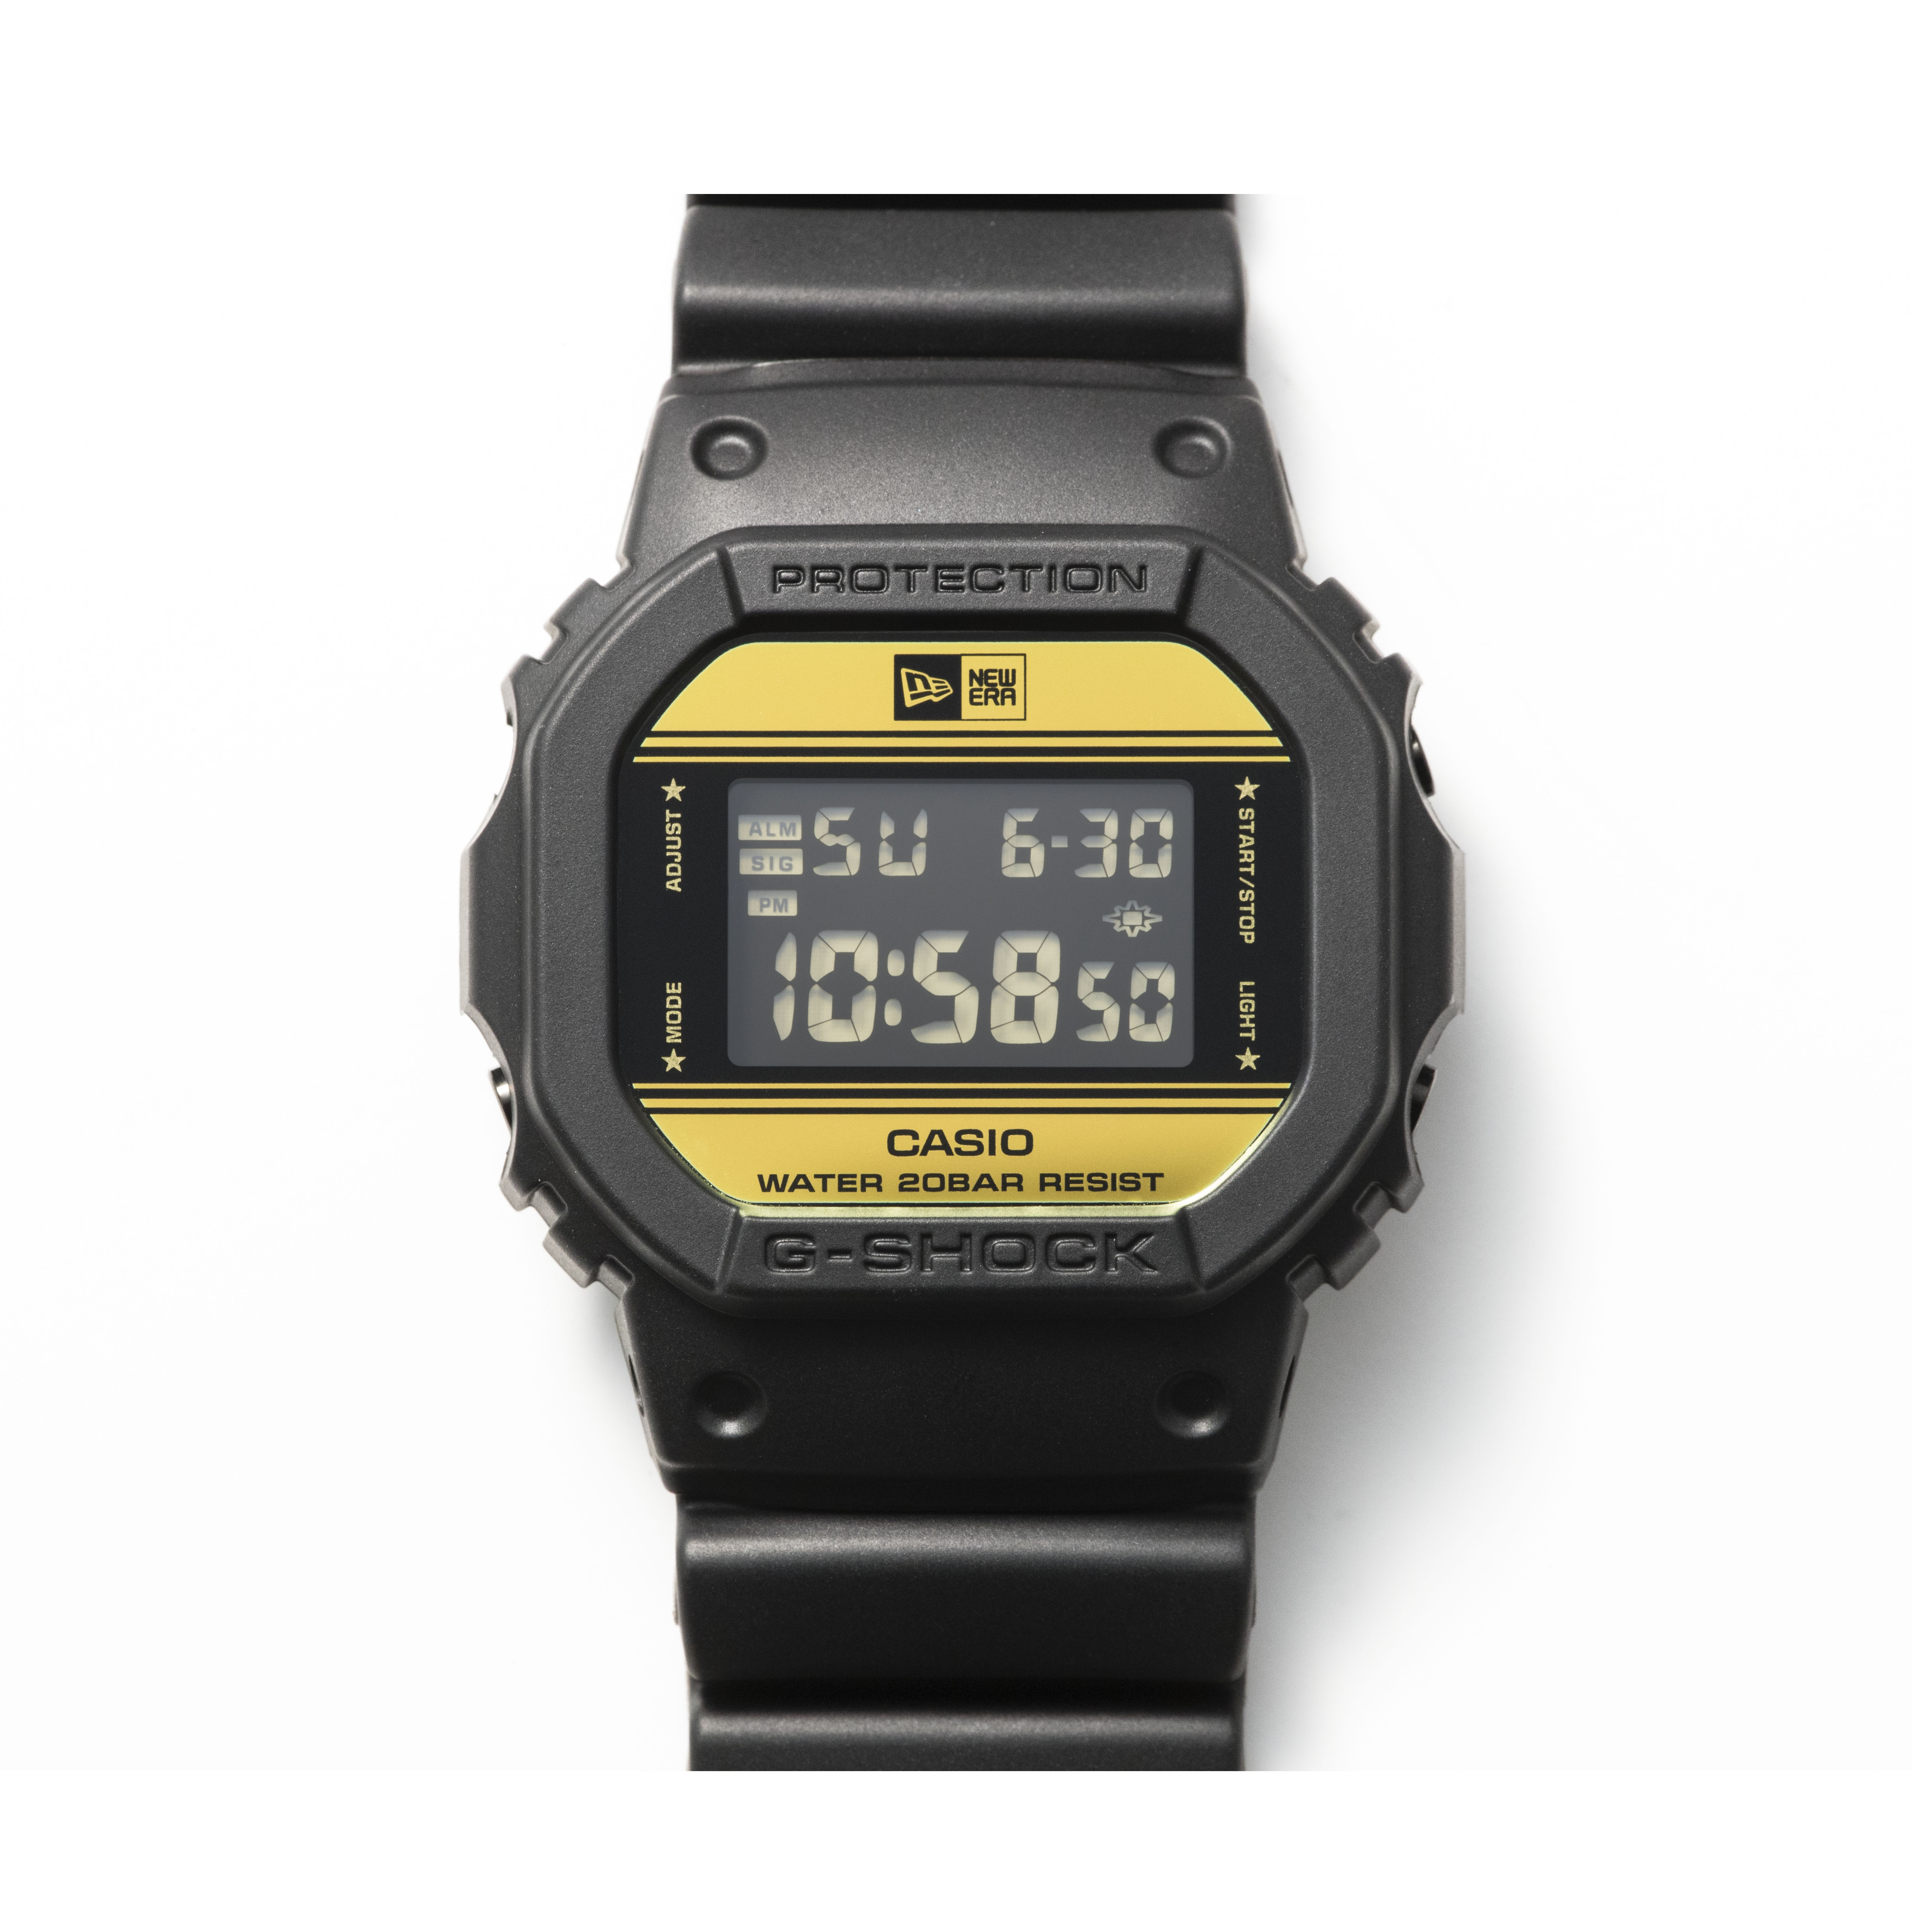 Montre New Era X G-Shock Casio